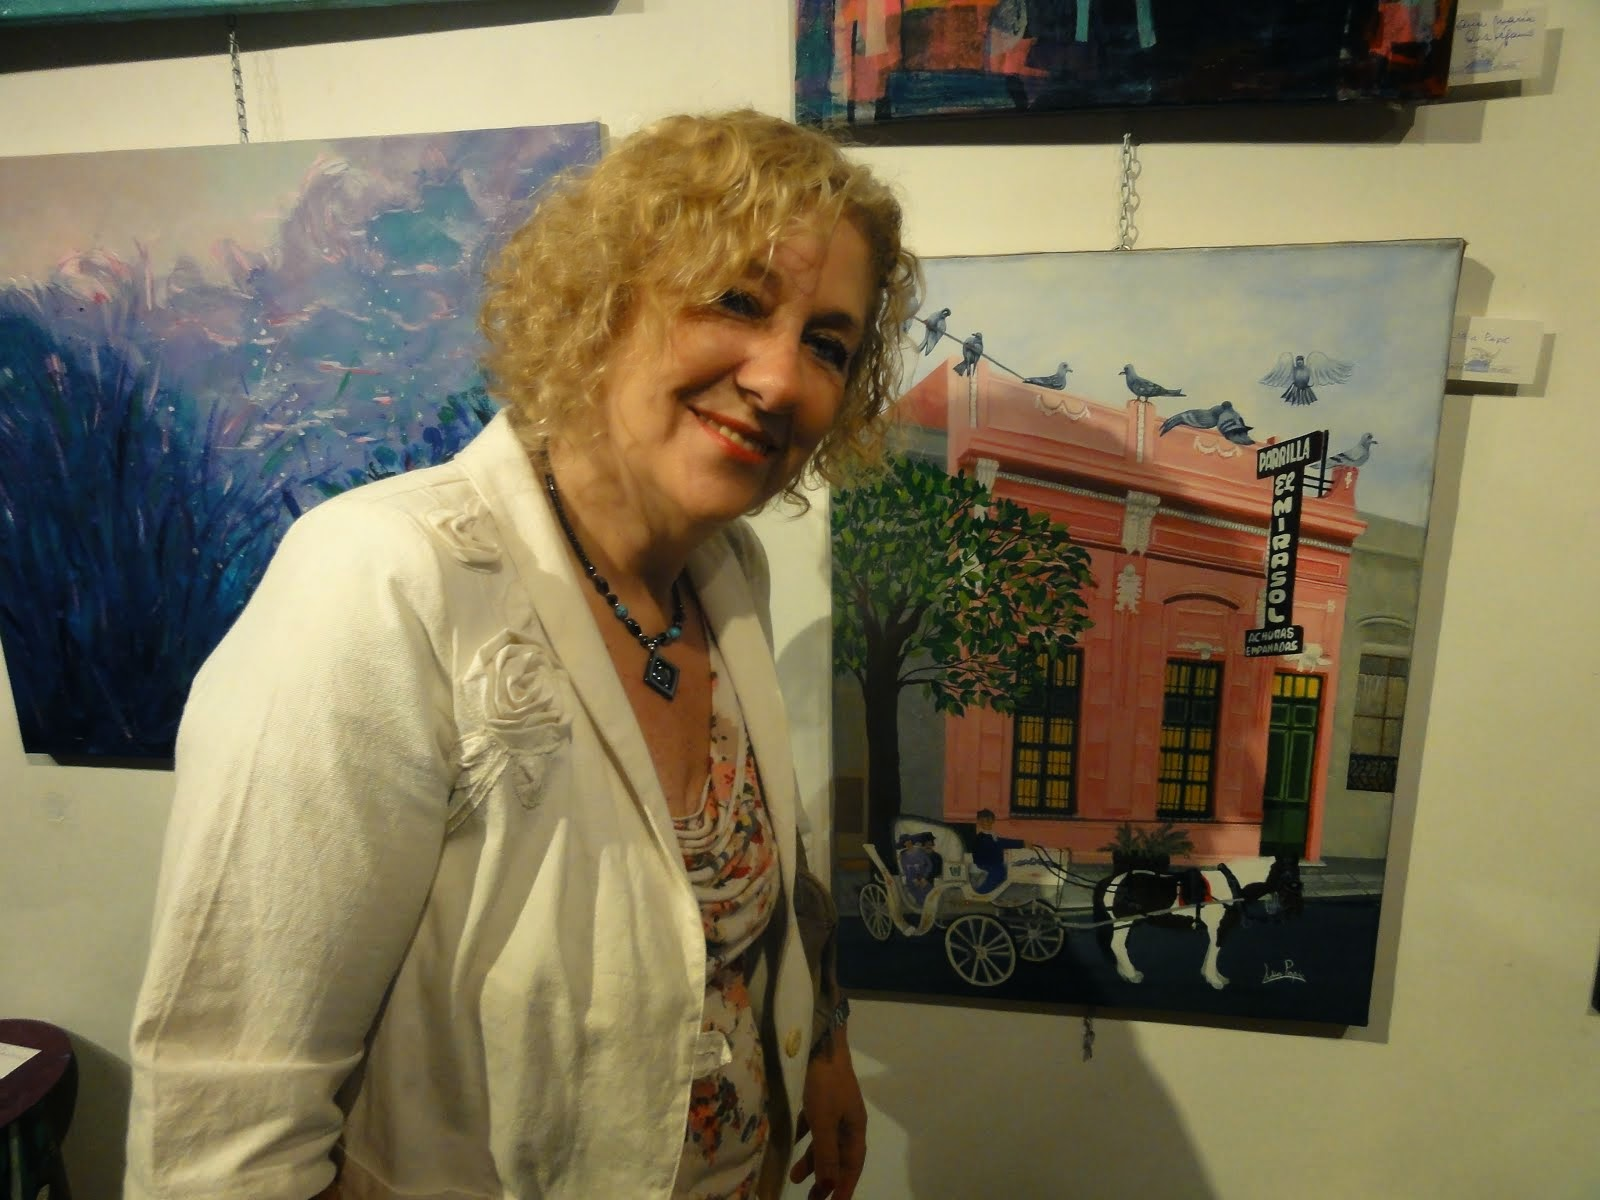 GALLERY NIGHT EN LAURA LAMBRE STUDIO